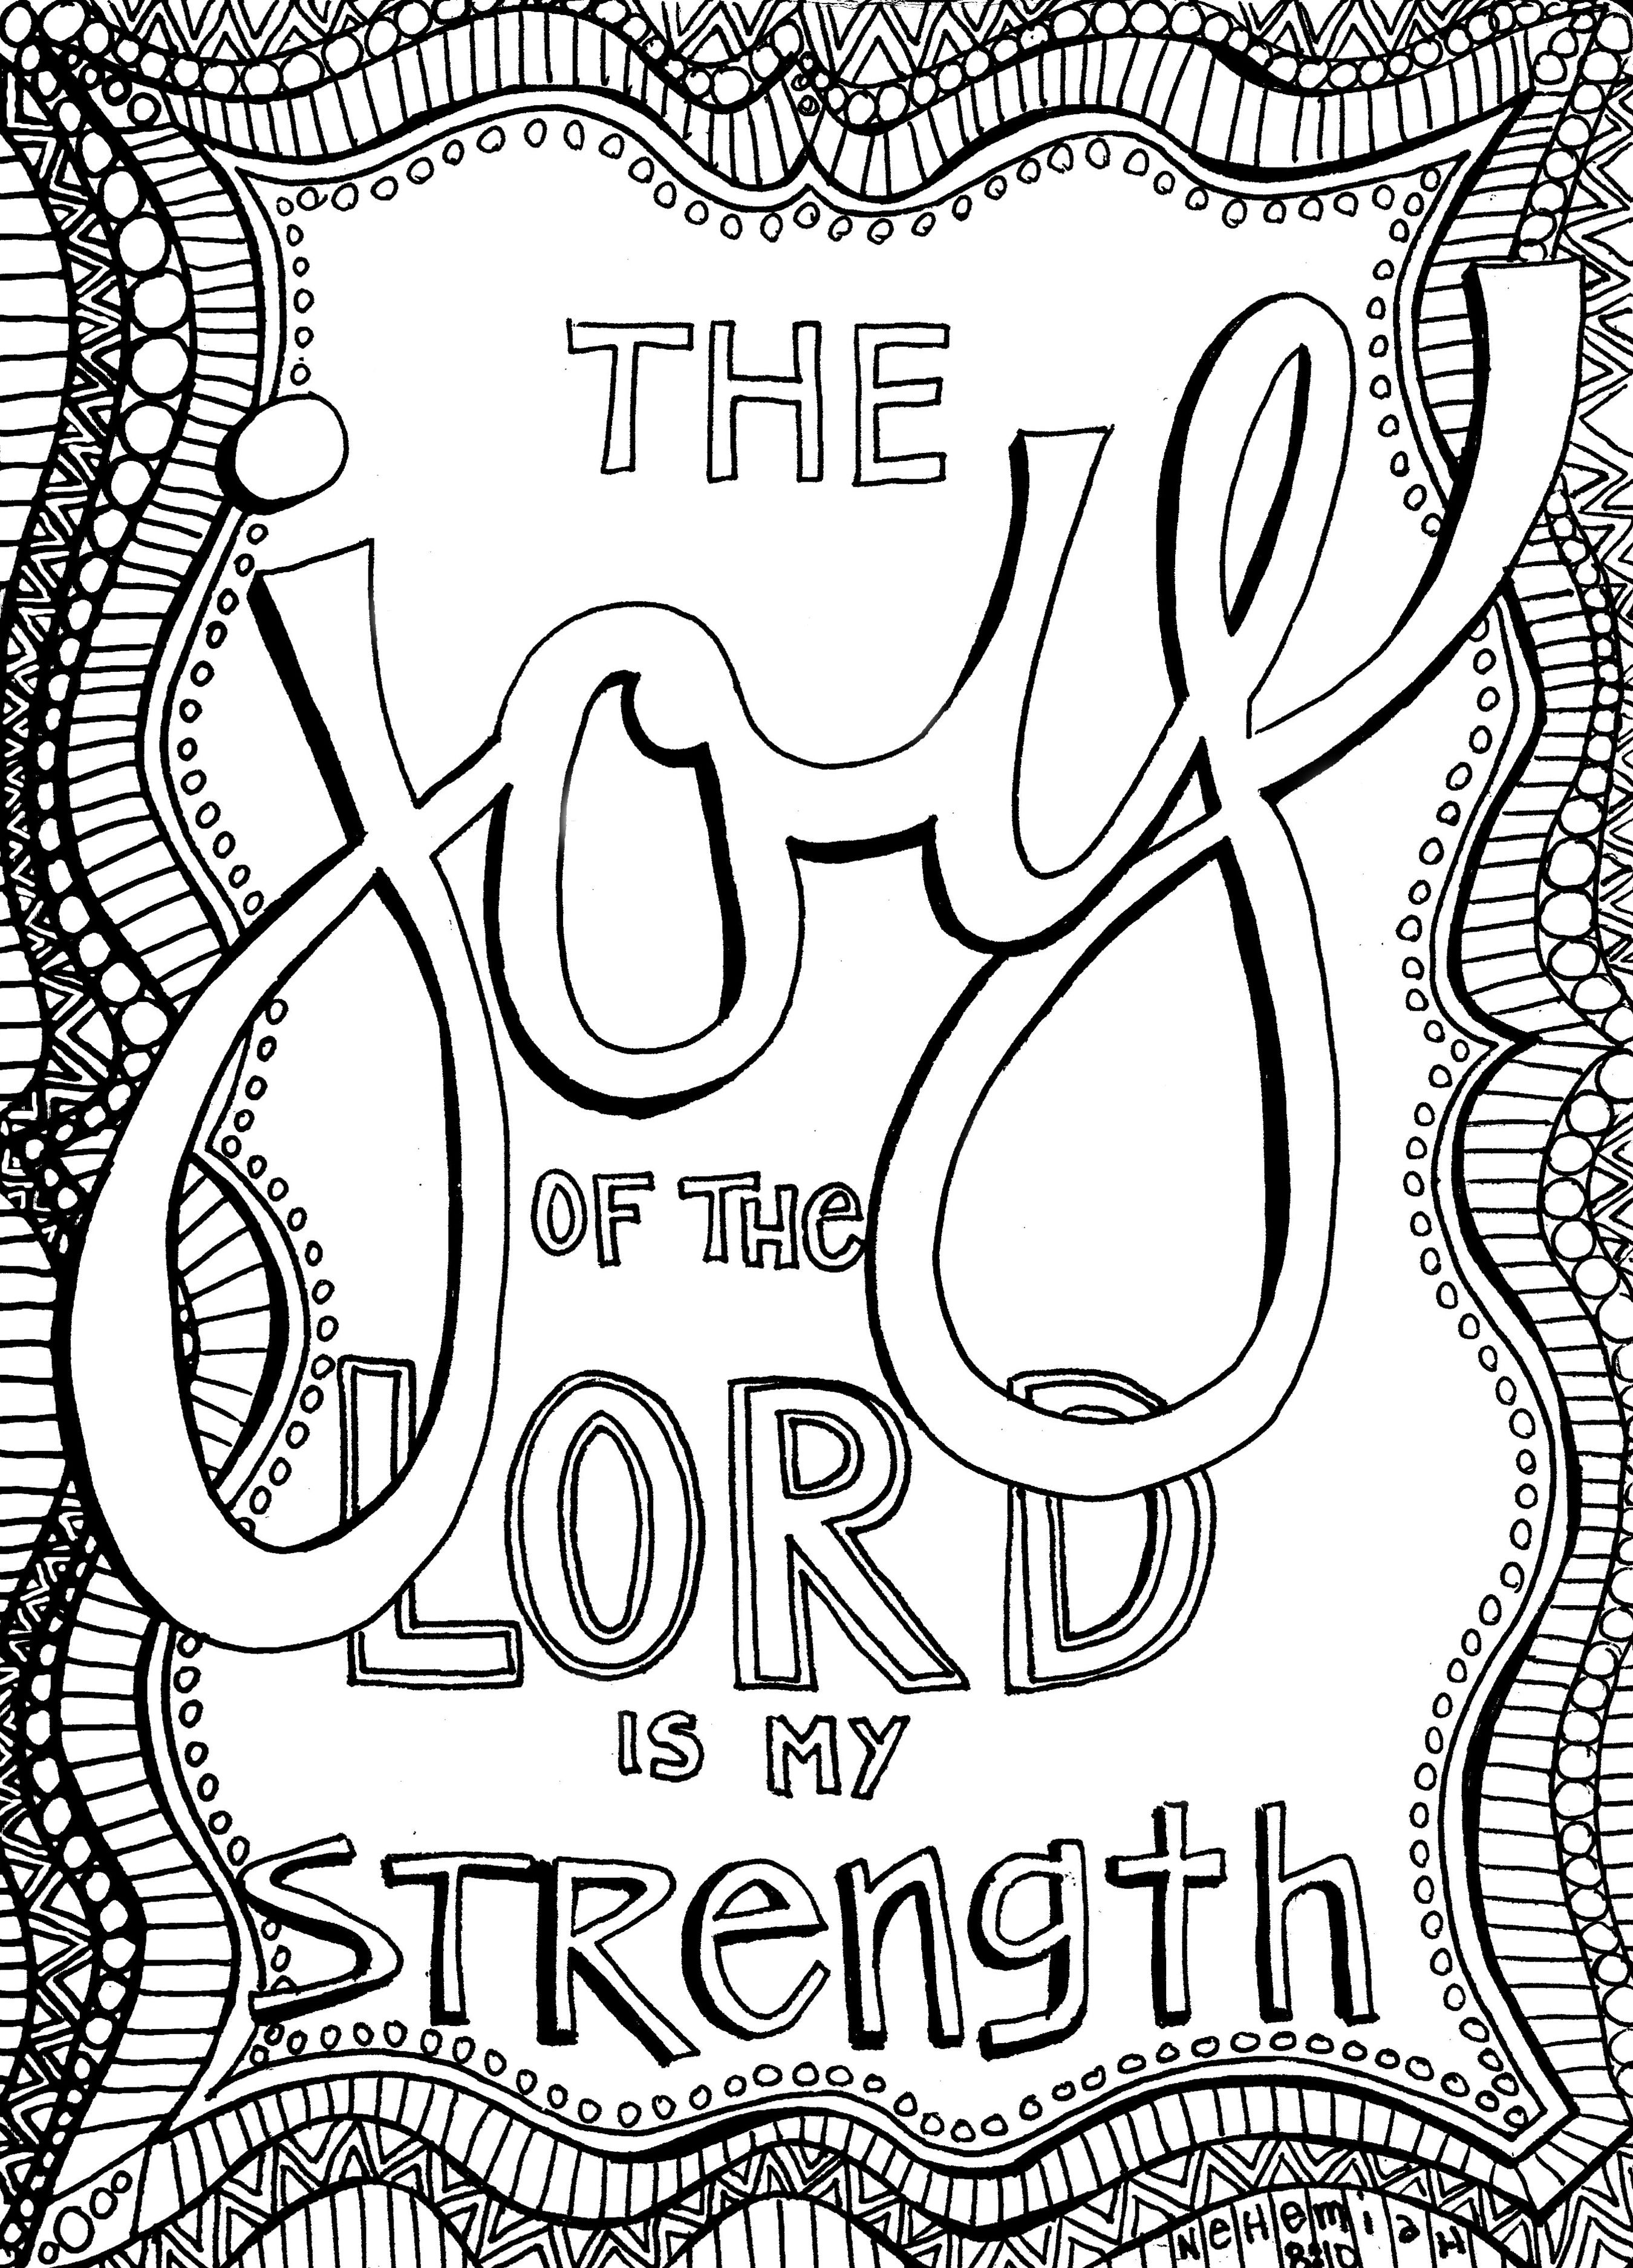 free printable bible coloring pages for children glorious jesus coloring bible coloring free printable coloring pages free bible for printable children